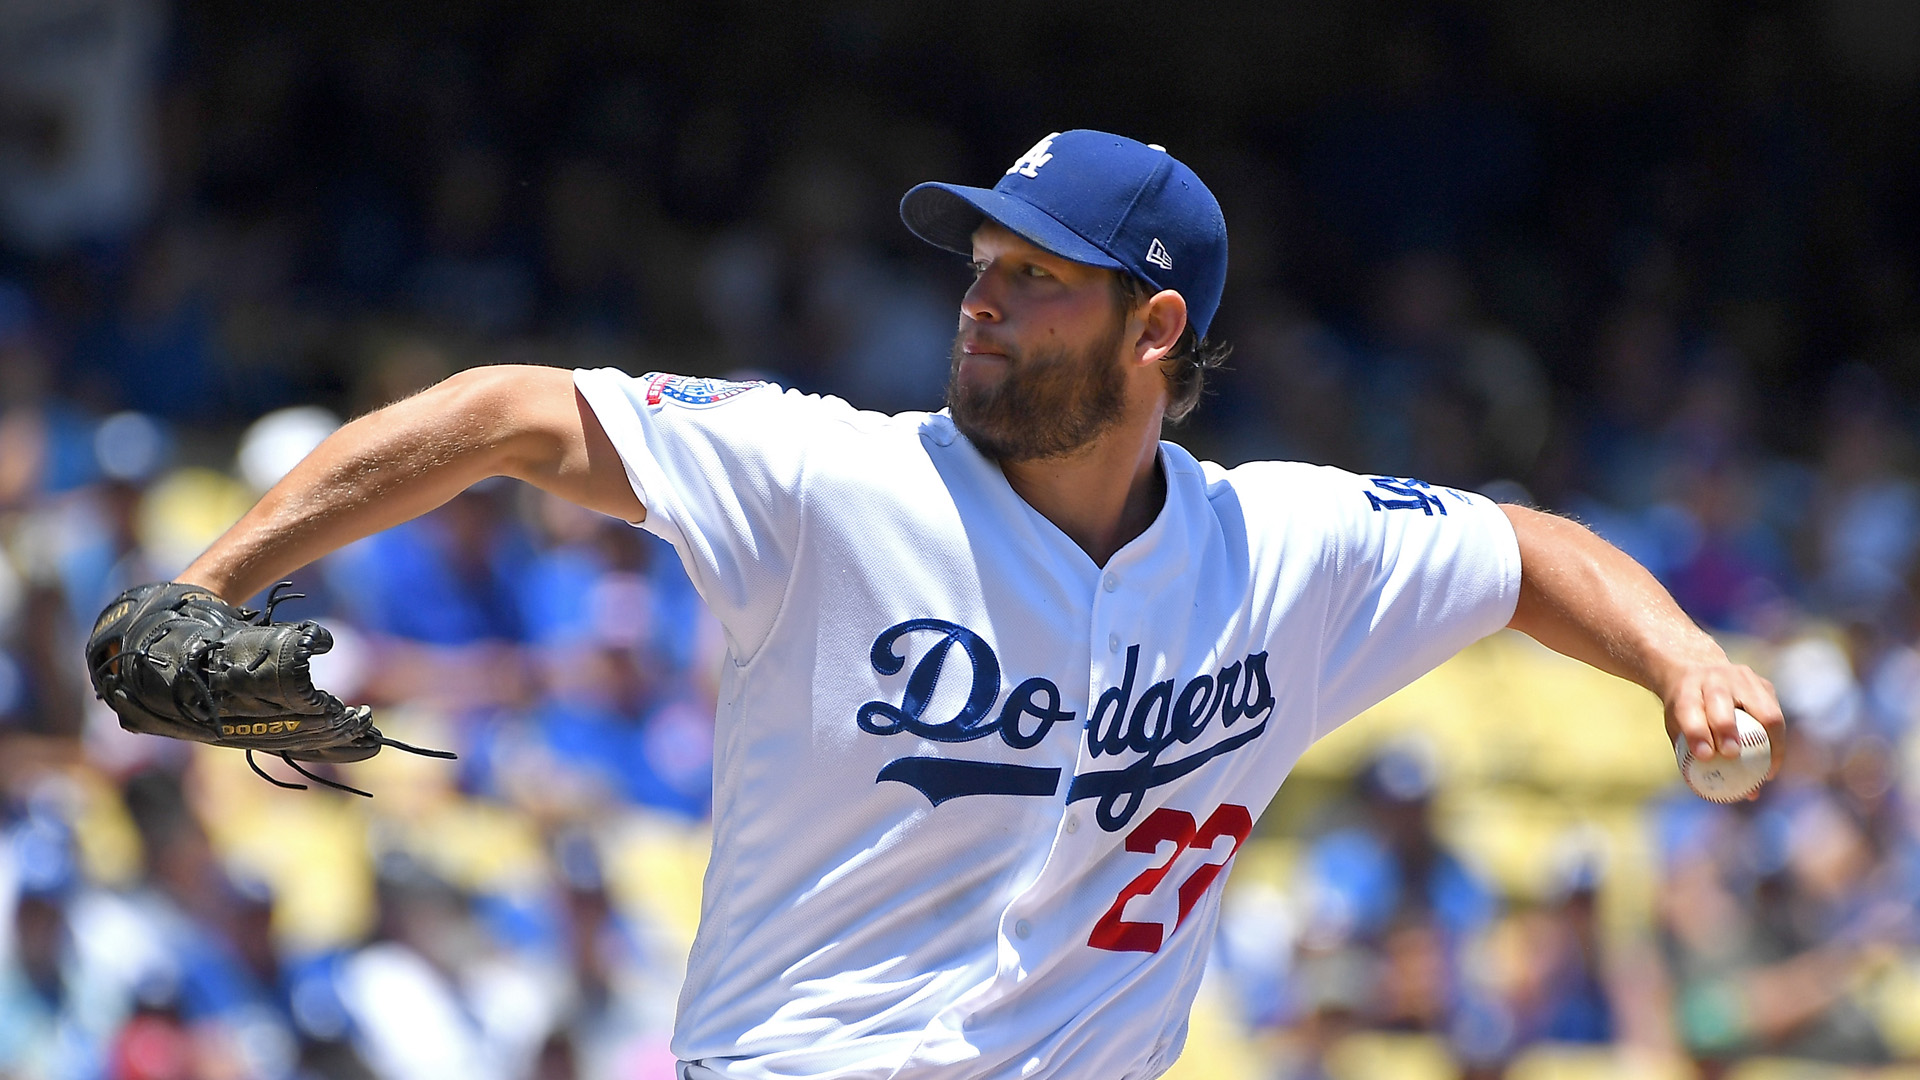 Clayton Kershaw of the Los Angeles Dodgers pitches in the second inning of the game against the Chicago Cubs at Dodger Stadium on June 28, 2018. (Credit: Jayne Kamin-Oncea/Getty Images)